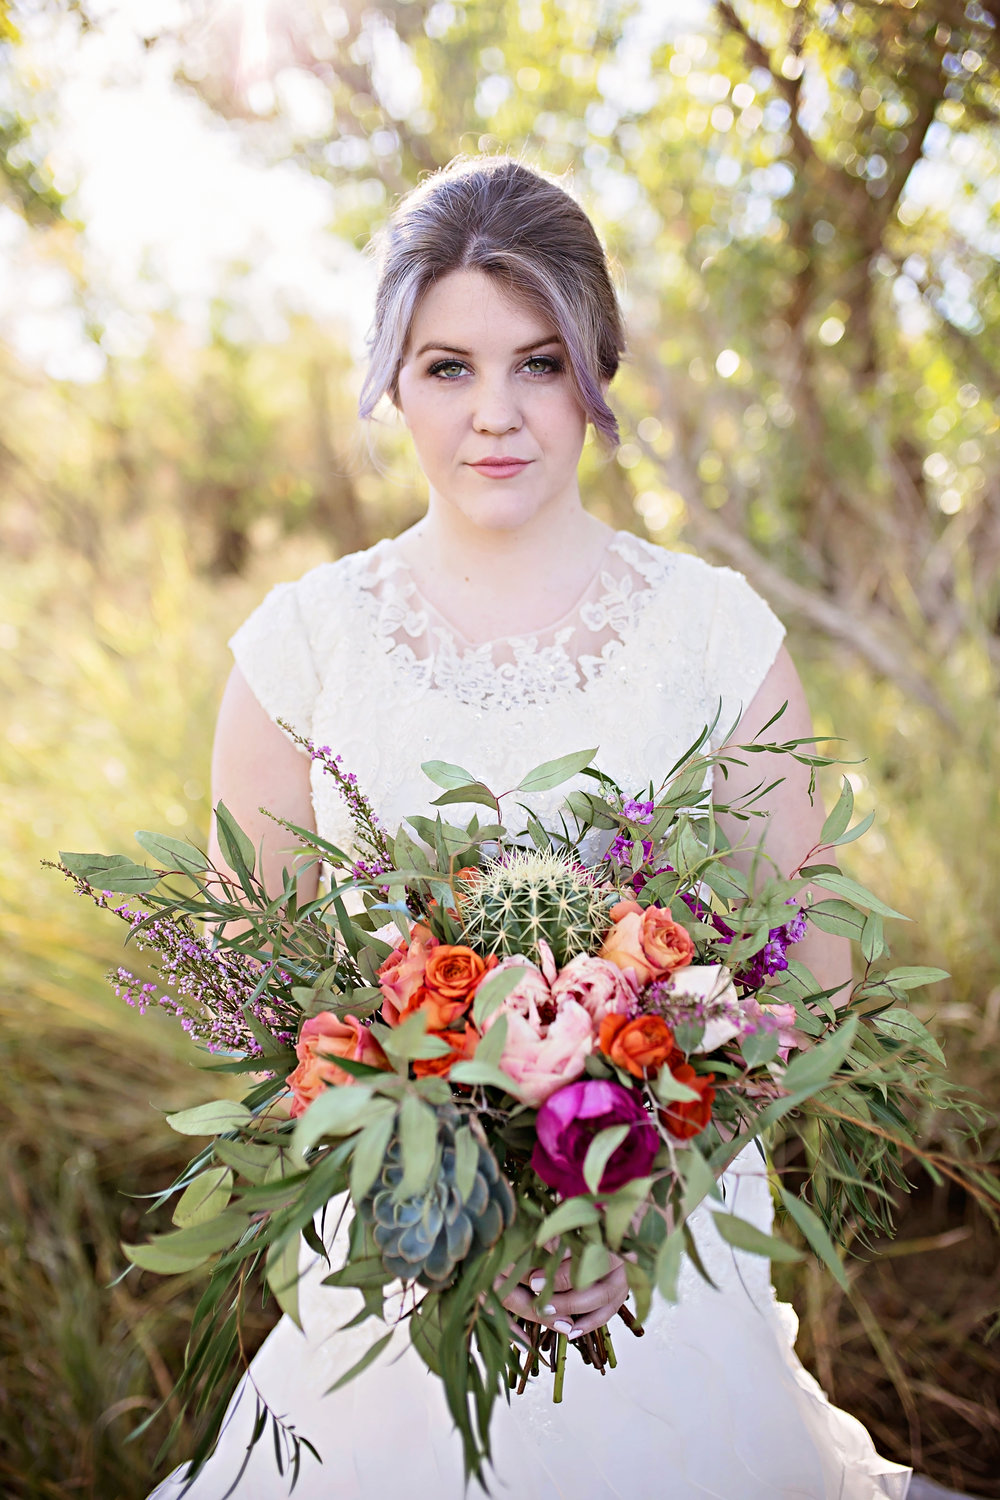 HAIR + MAKEUP: Harley Ann Artistry | DRESS: A Dressy Occasion |PHOTO: Jessica Lobbins